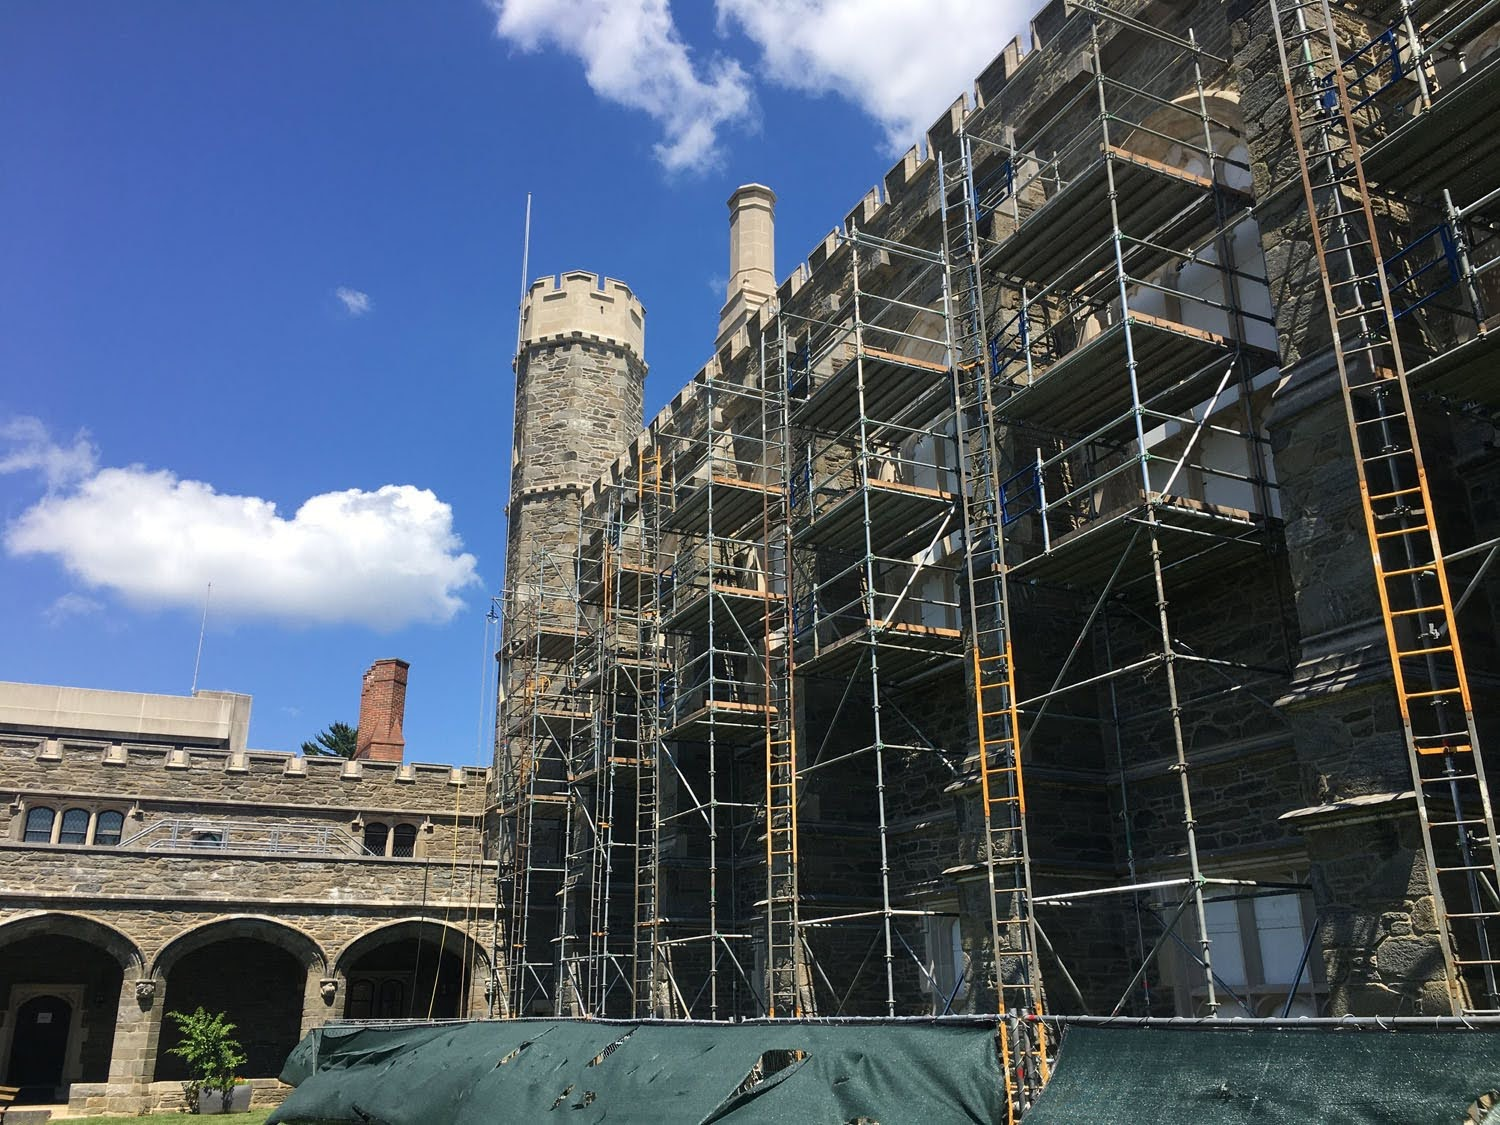 Scaffold, scaffolding, scaffolding, rent, rents, scaffolding rental, construction, ladders, equipment rental, scaffolding Philadelphia, scaffold PA, philly, building materials, NJ, DE, MD, NY, renting, leasing, inspection, general contractor, masonry, 215 743-2200, superior scaffold, electrical, HVAC, swing stage, swings, suspended scaffold, overhead protection, canopy, transport platform, lift, hoist, mast climber, access, buck hoist, bryn mawr college